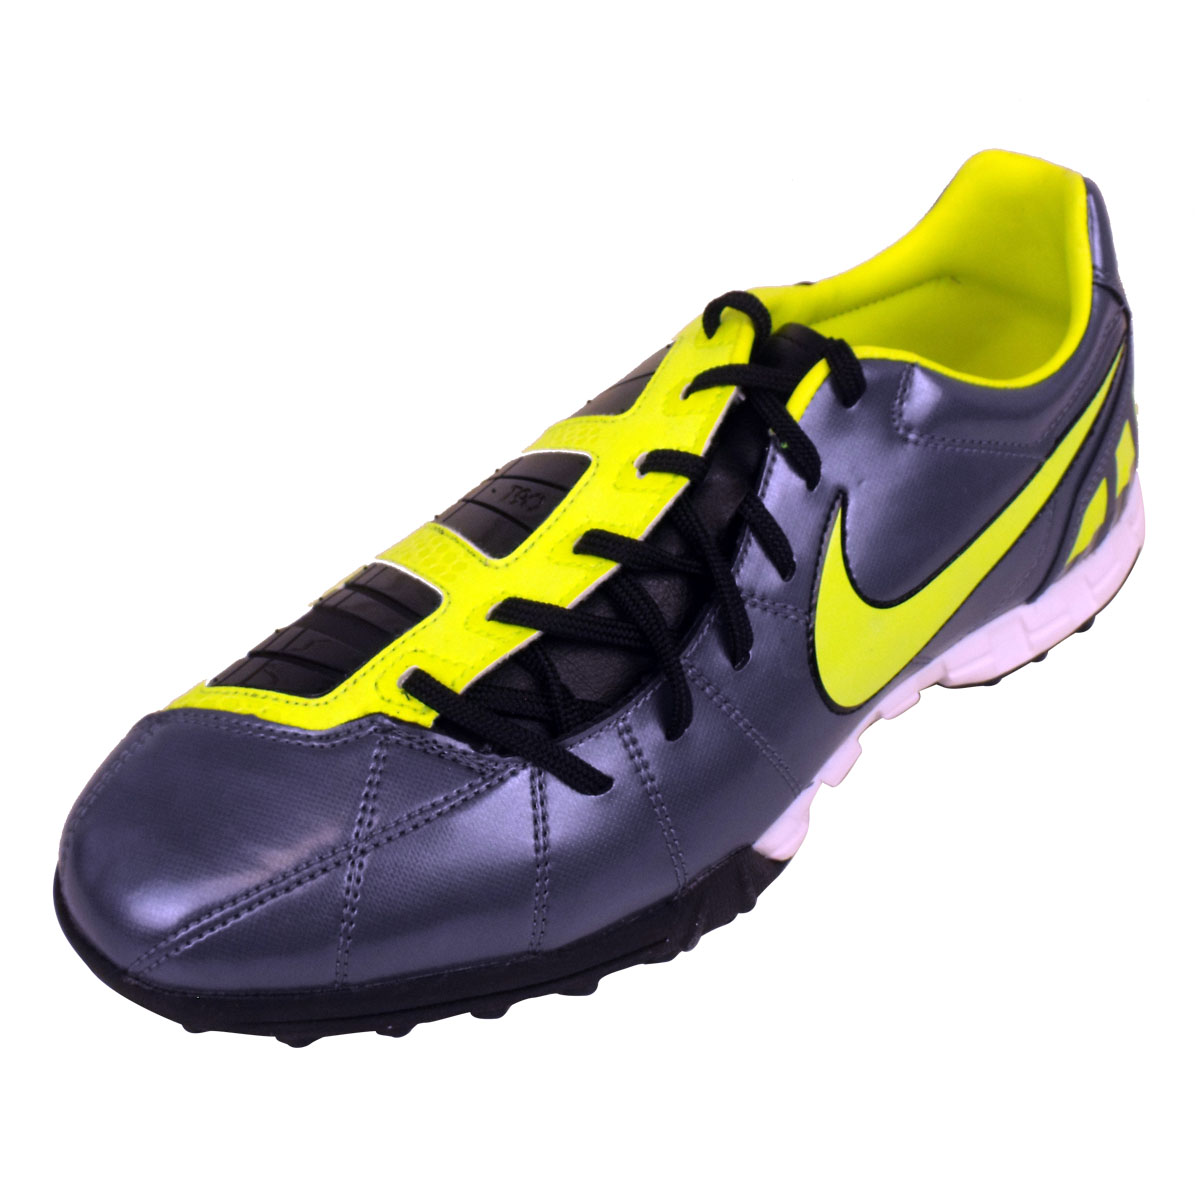 Best Astro Turf Shoes